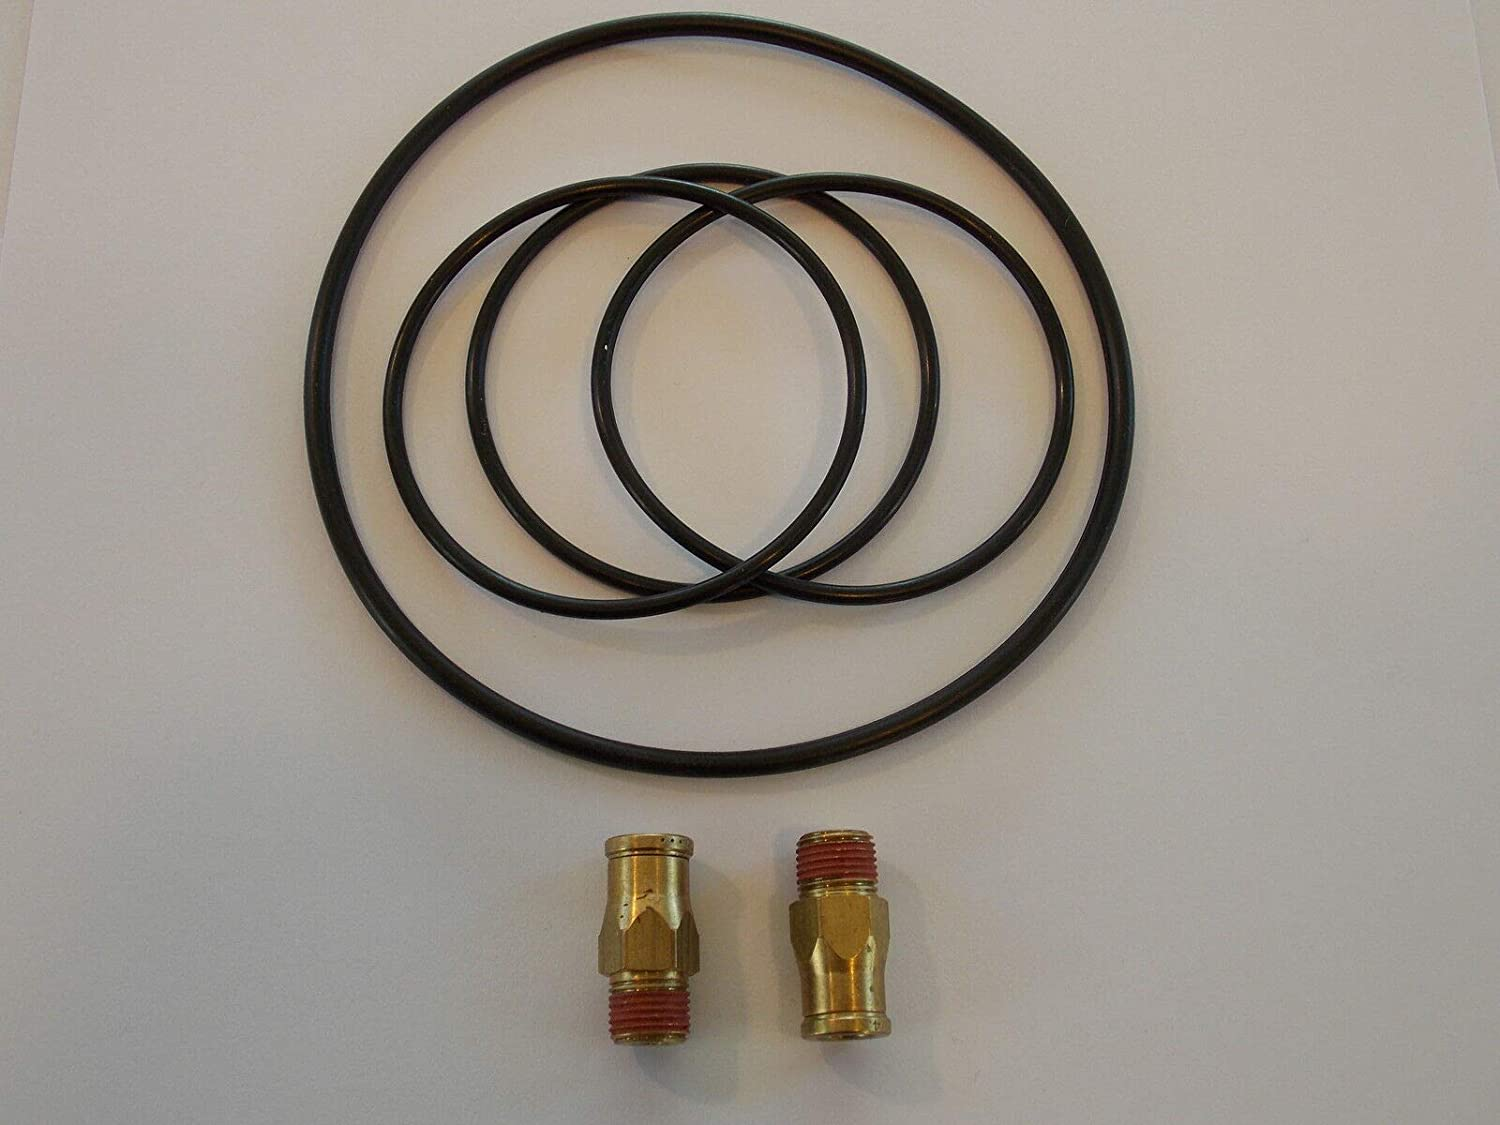 Online Auto Supply Replacement Seal Kit Male Fittings Ranking TOP10 w We OFFer at cheap prices Rota for